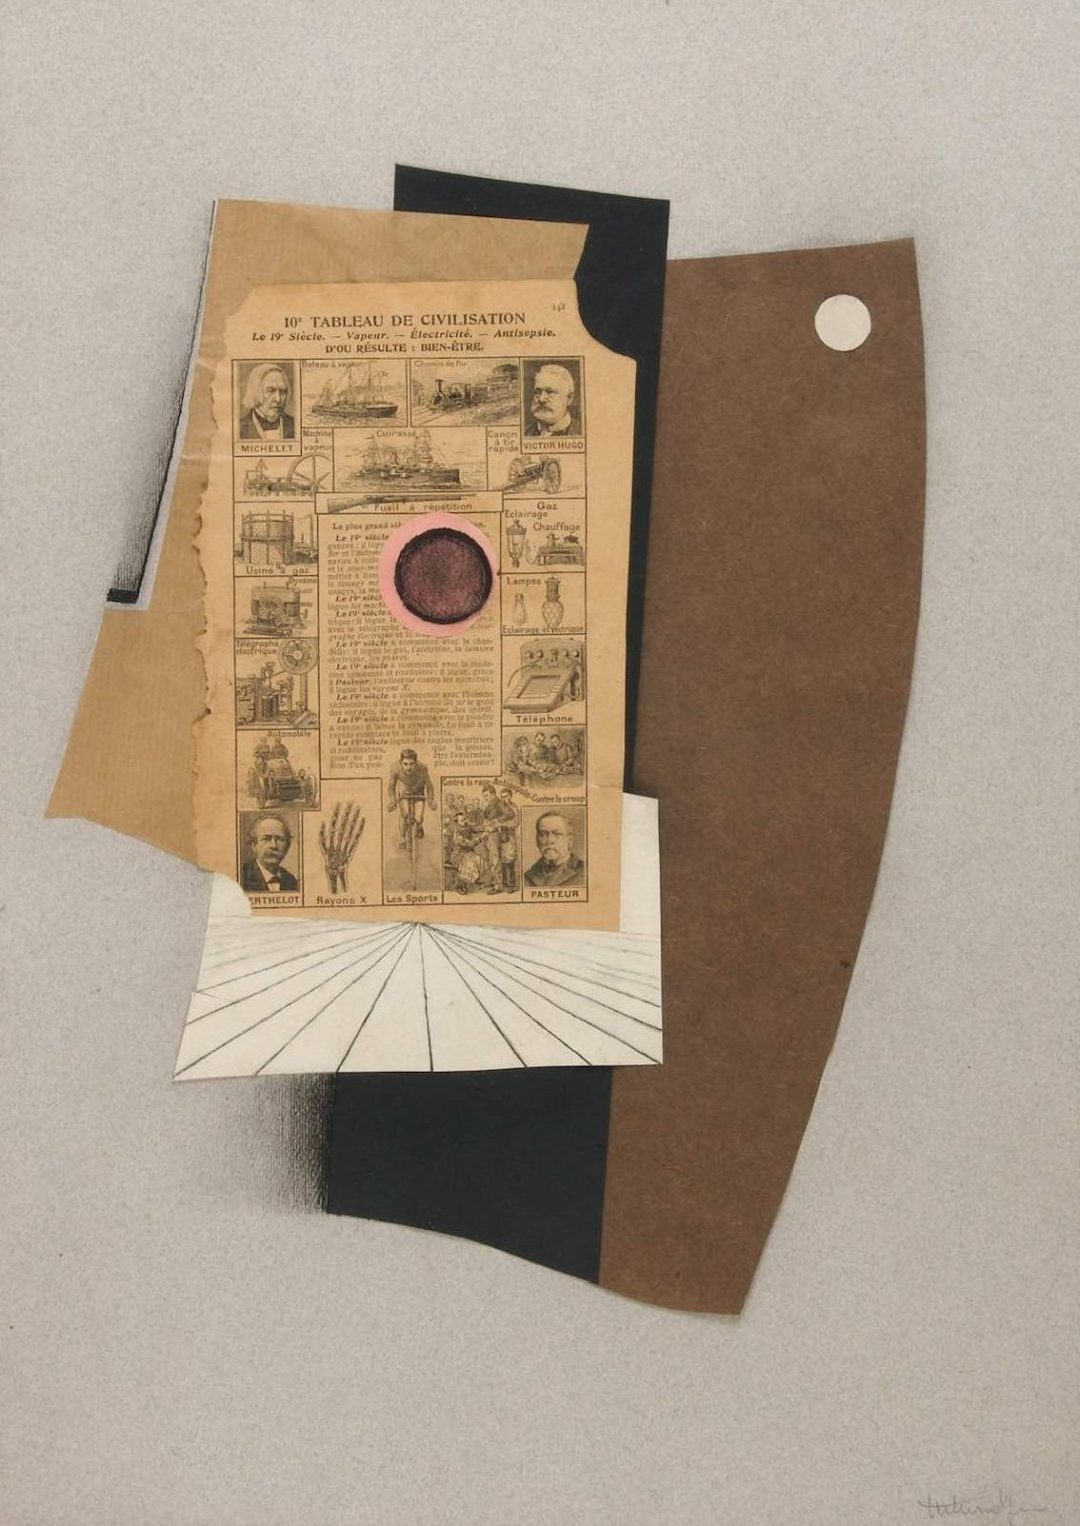 Untitled (or Picture of Civilisation), c.1925-1926, collage and ink on paper, 46 x 32,5 cm, private collection